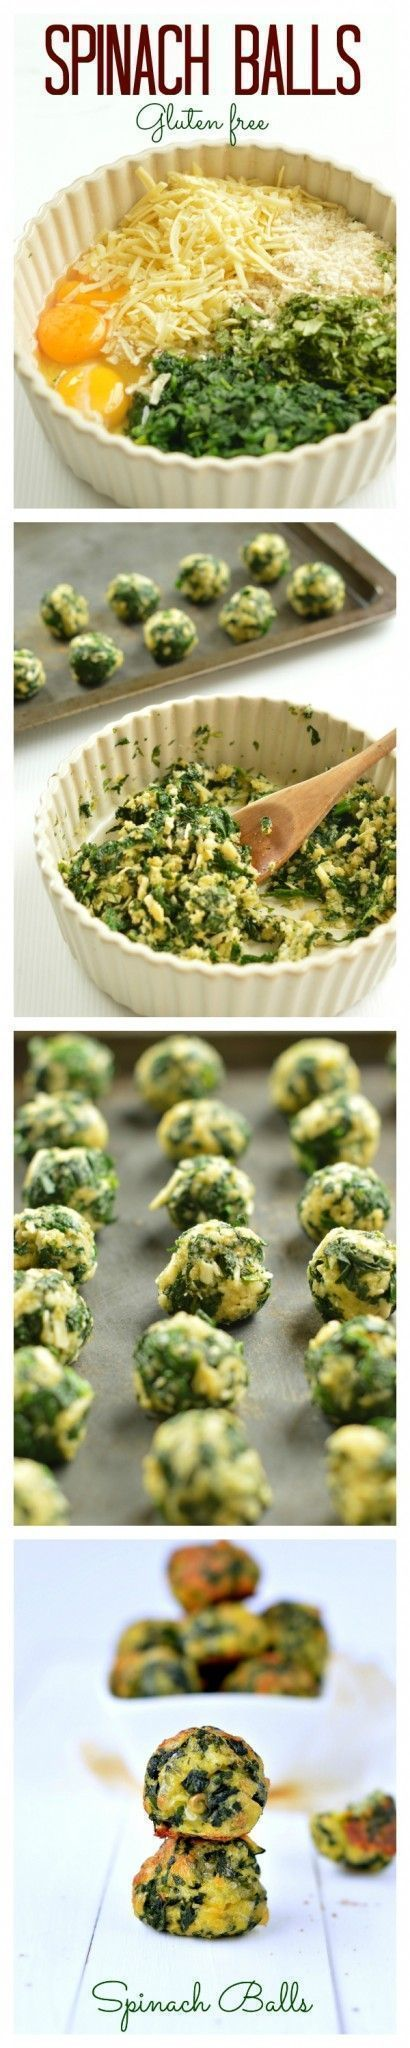 Make vegan- Spinach balls | clean eating spinach recipes | clean eating appetizers | spinach finger foods healthy